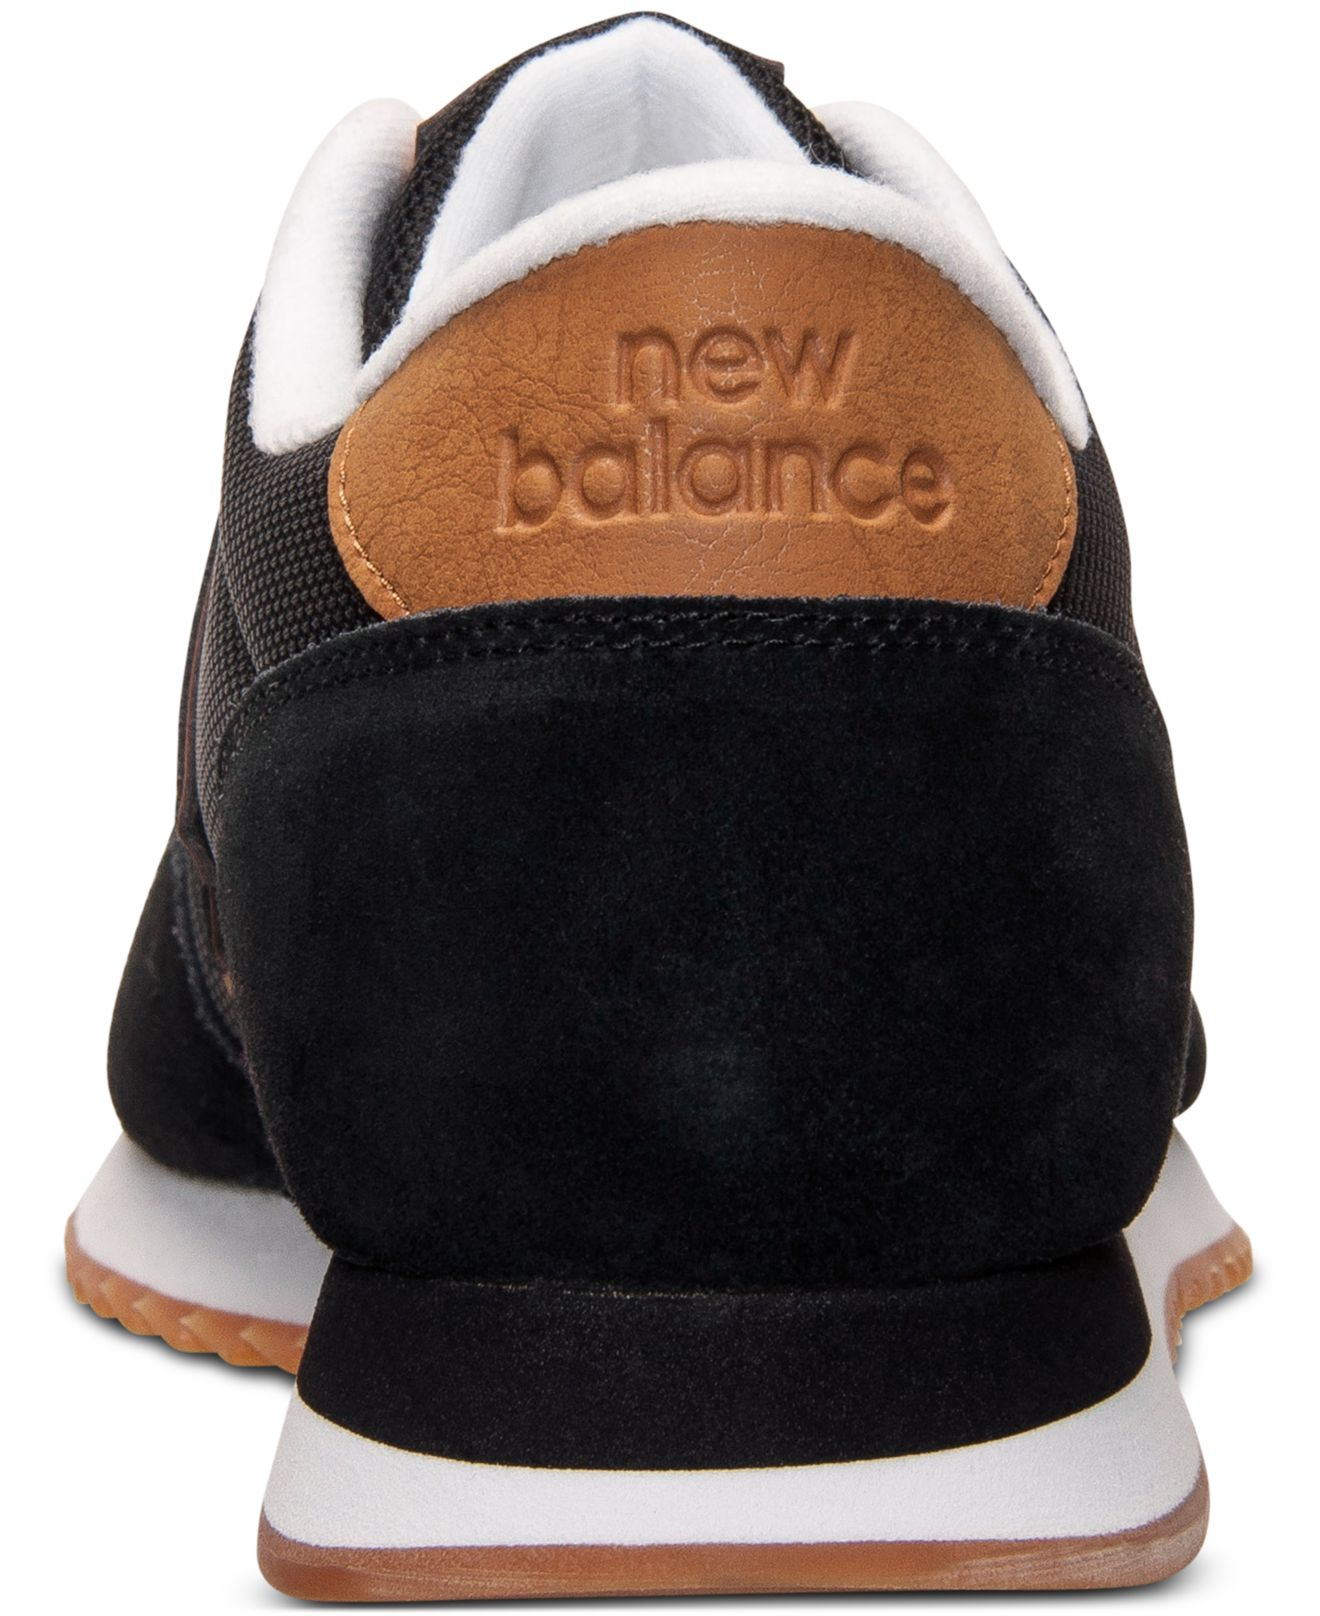 d9c44b0621fc Lyst - New Balance Men s 501 Ripple Sole Casual Sneakers From Finish ...